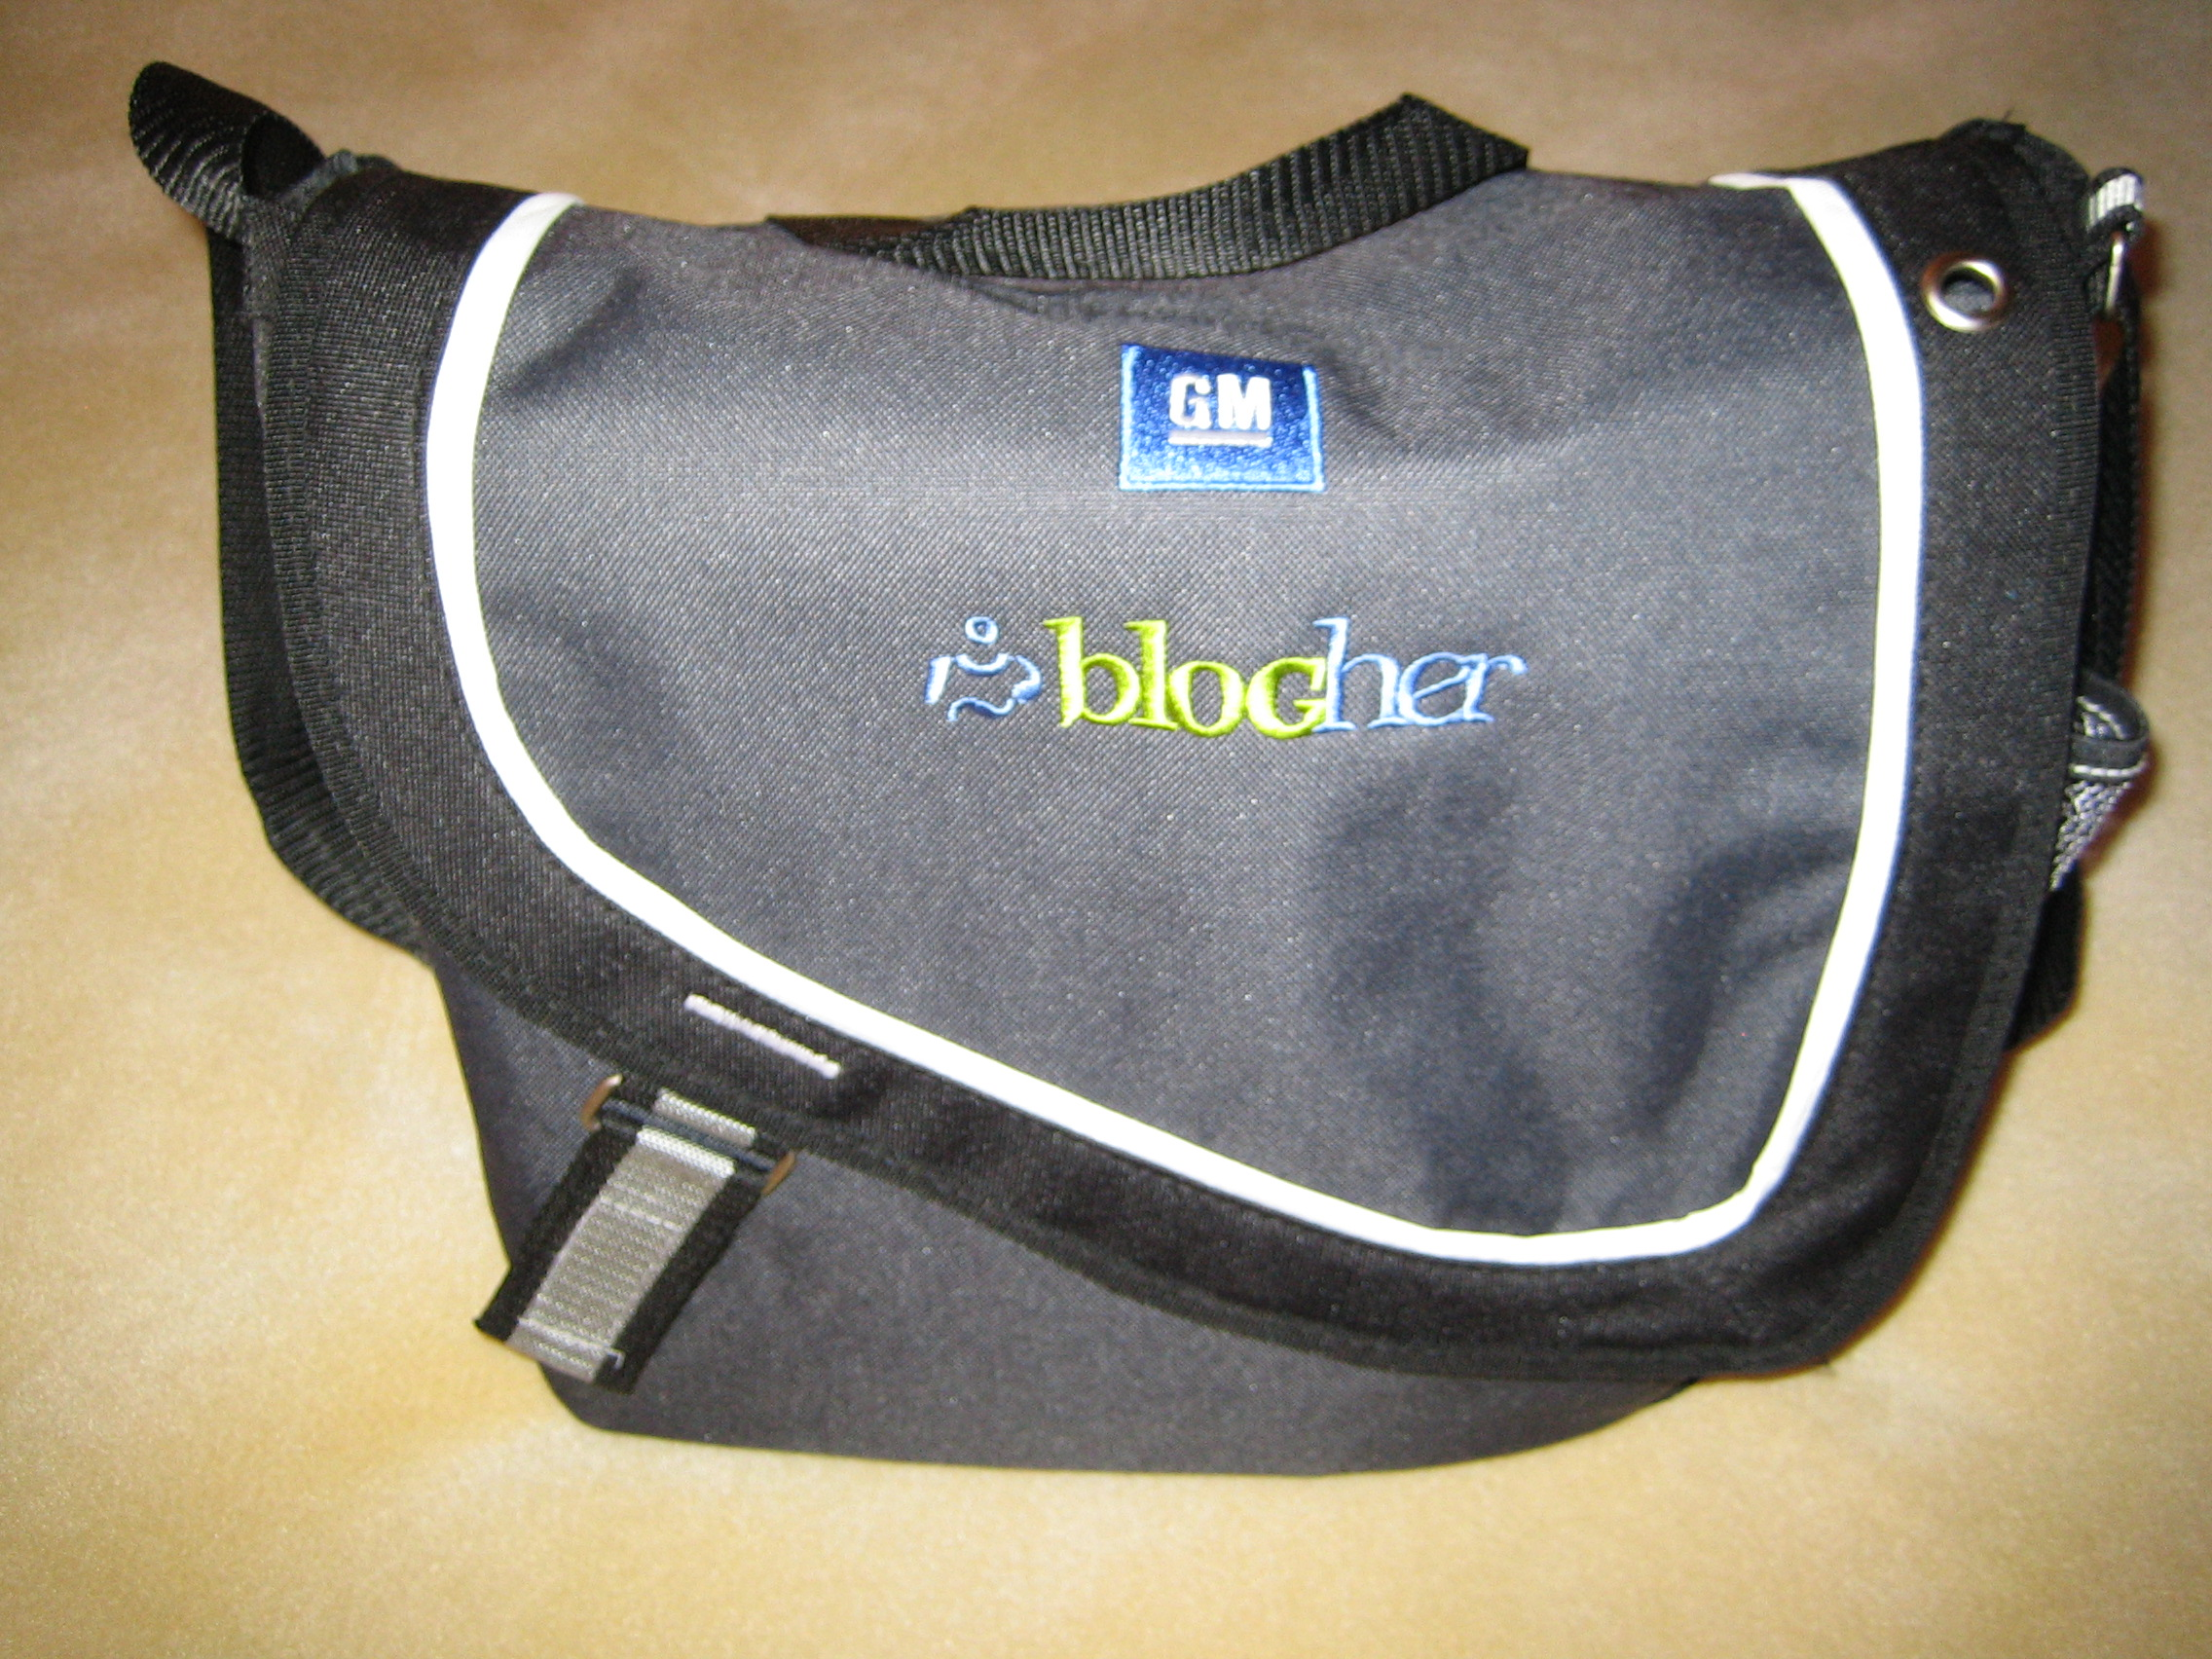 BlogHer 2007 Goodie bag